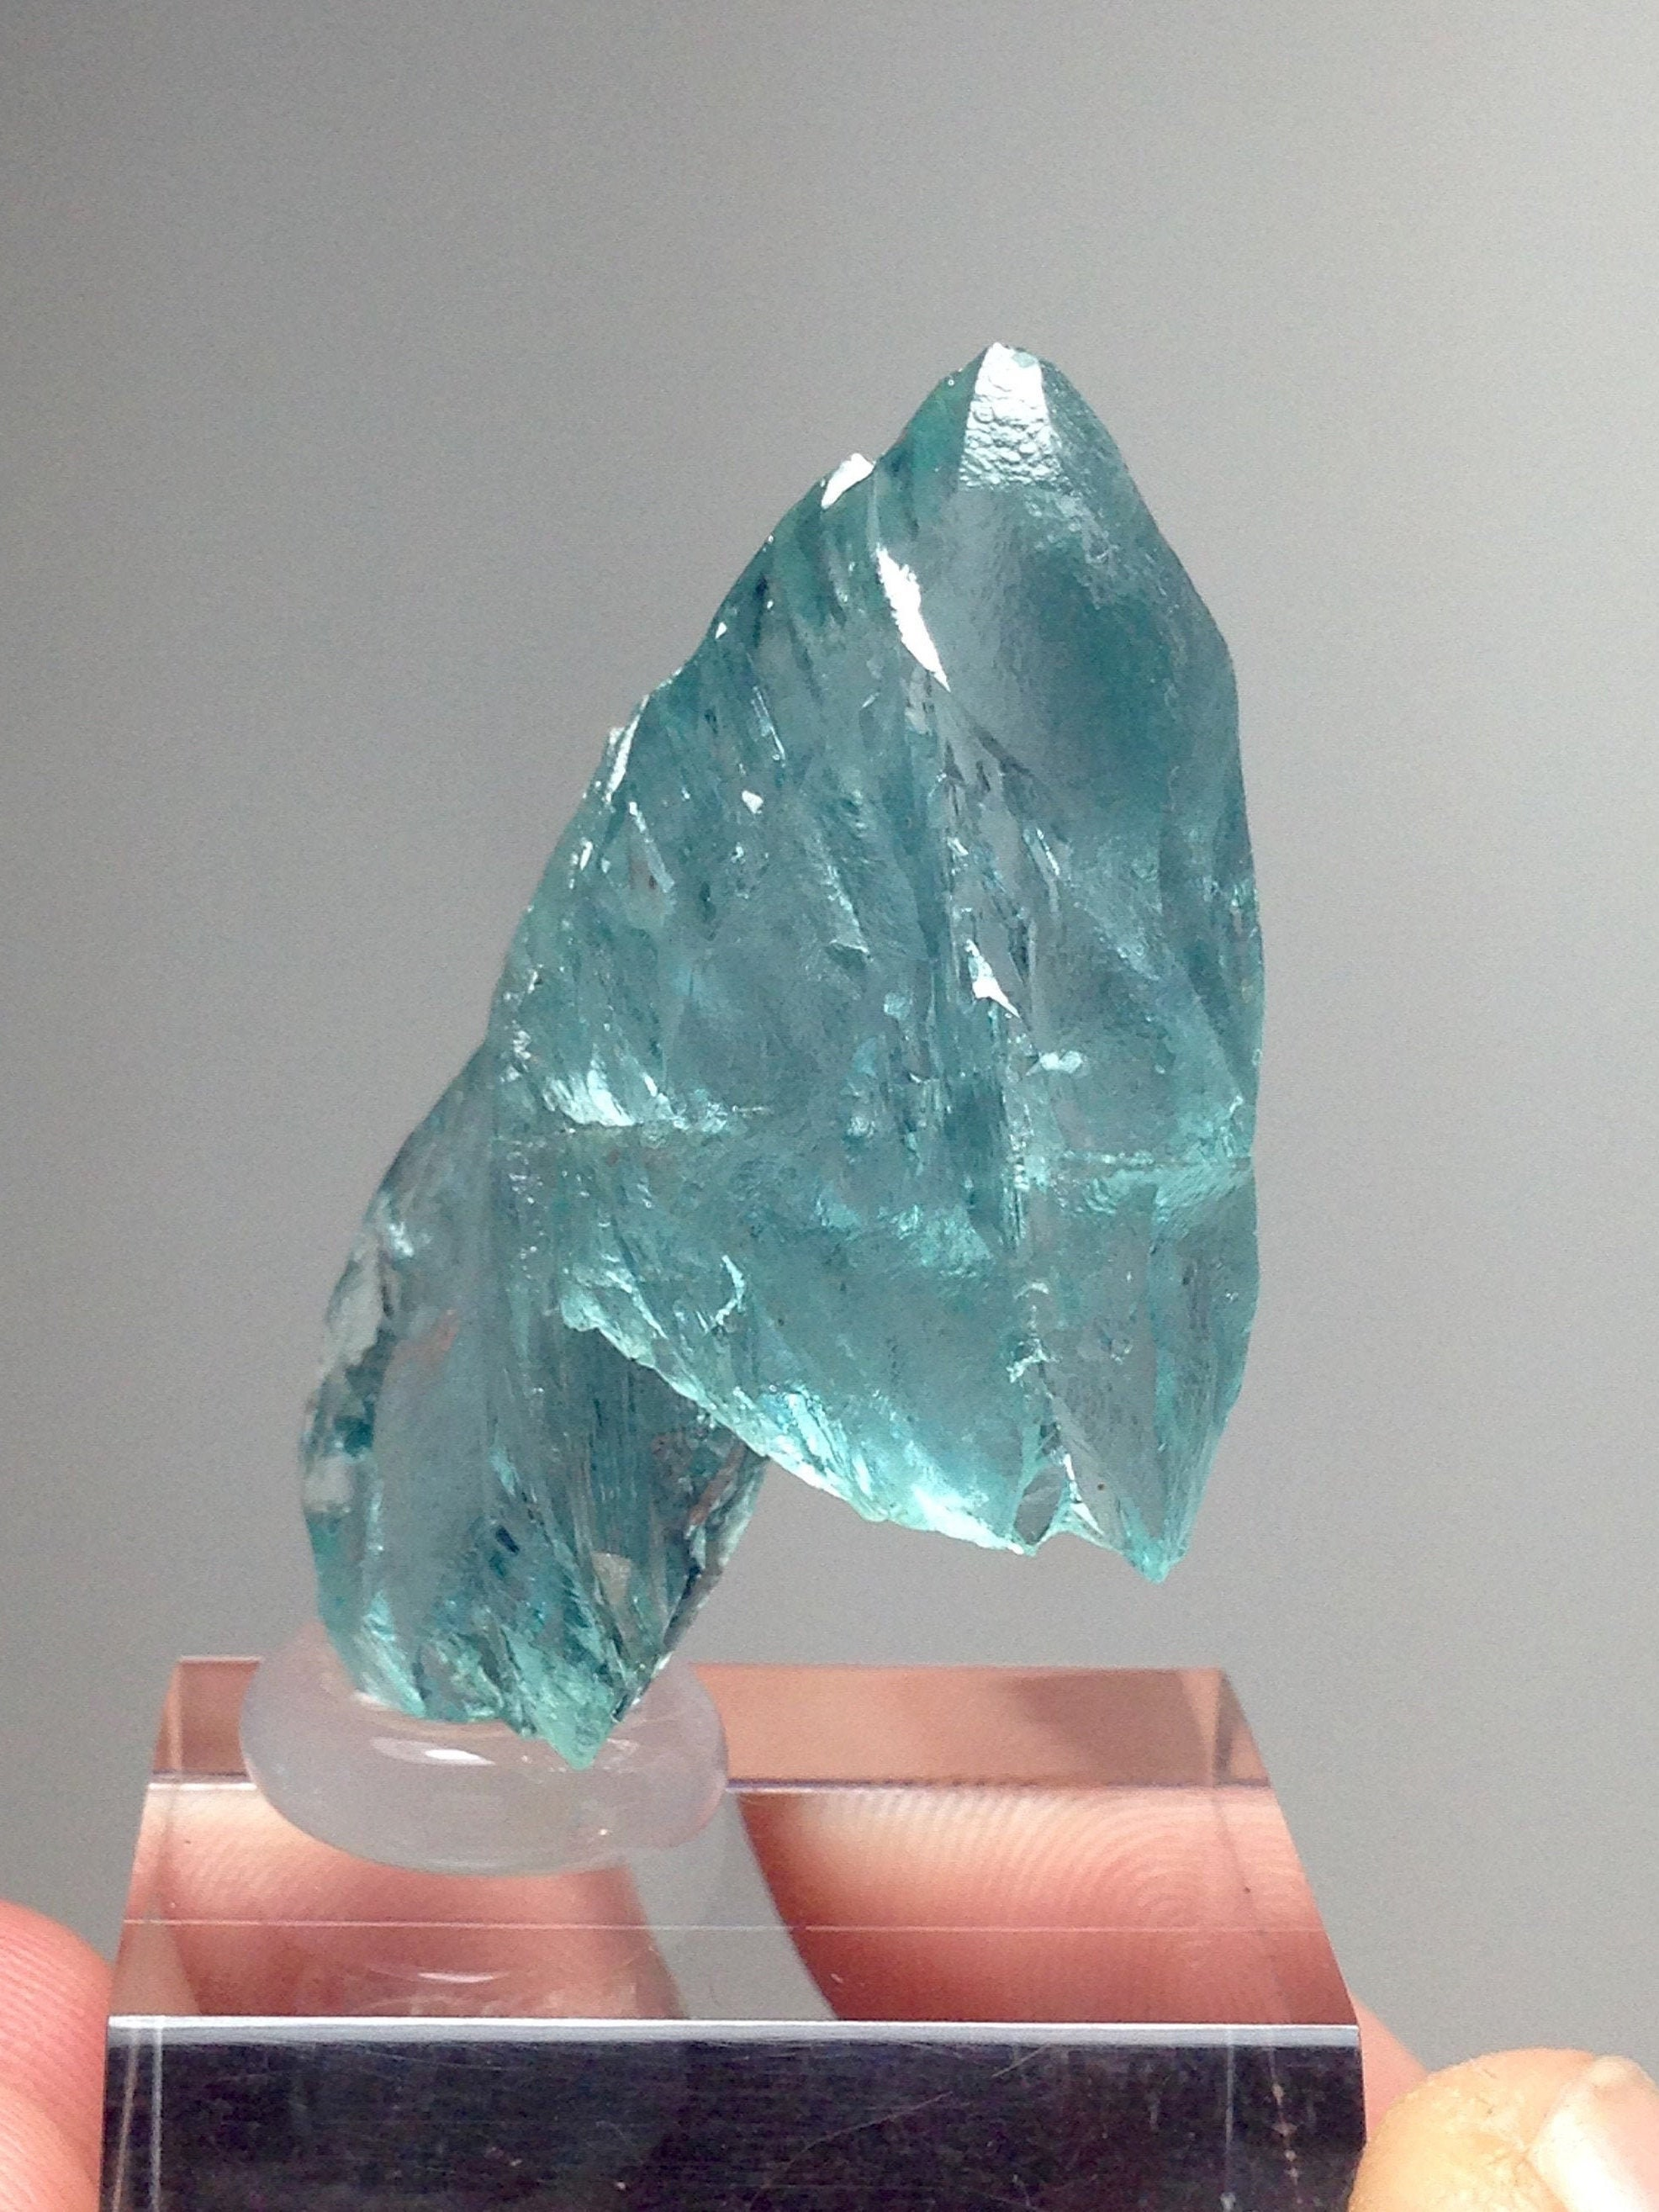 Aquamarine-Malawi 63.21 Ct Rare Etched Floater Crystal-Mostly Transparent with Some Natural Flaws-Rare!